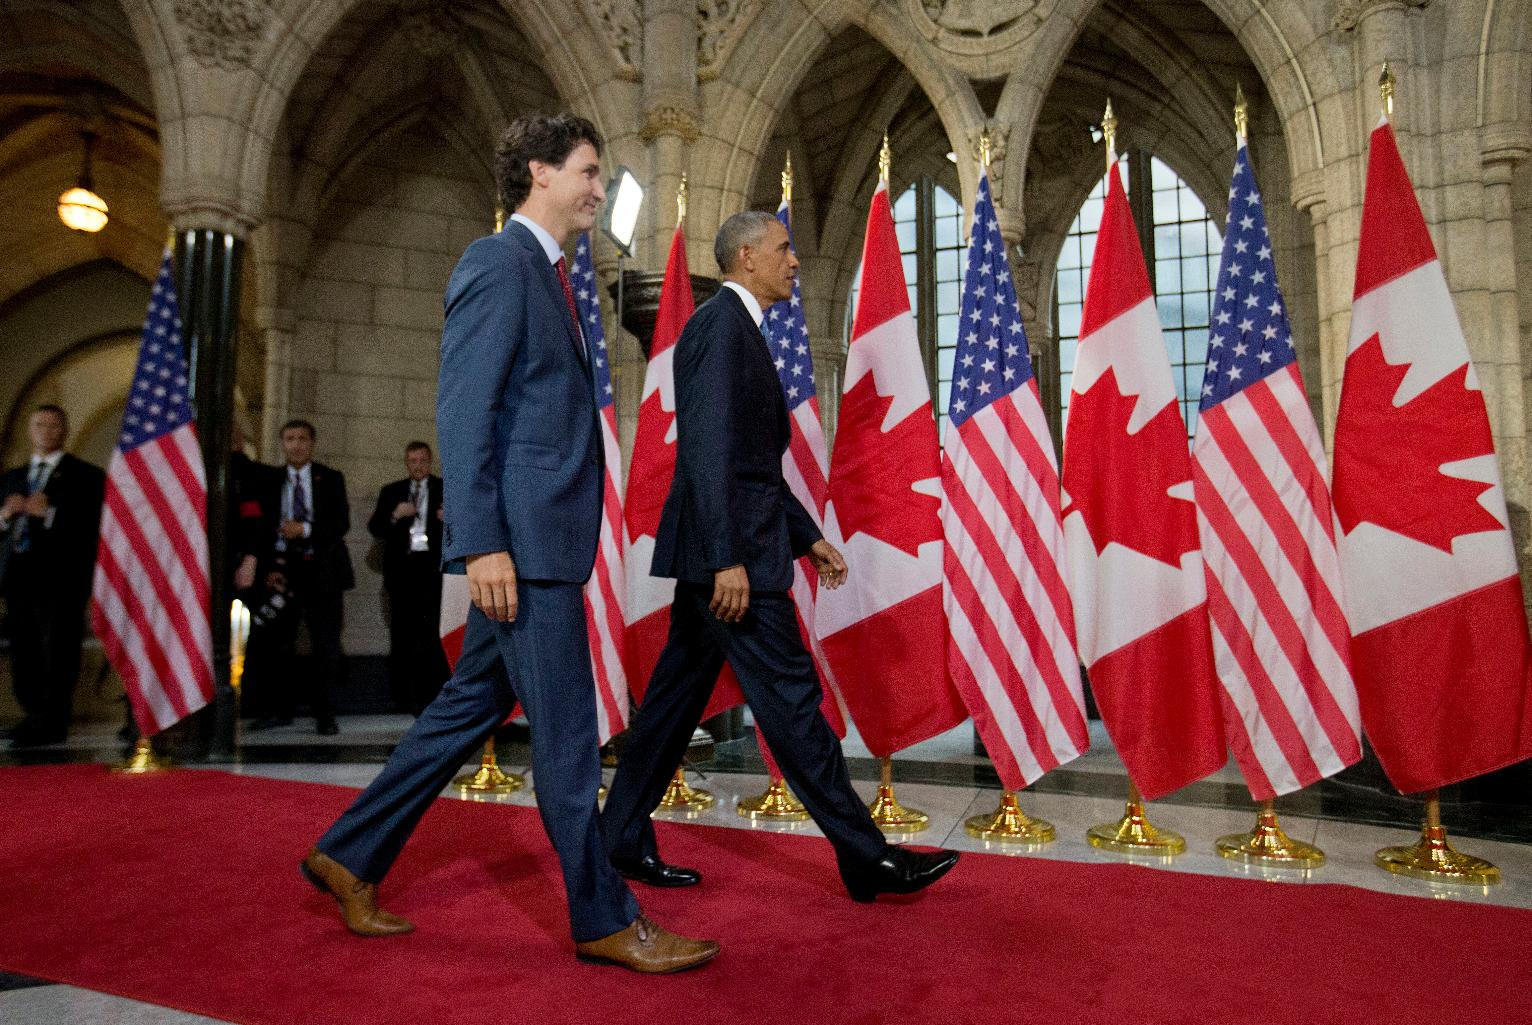 essay canada minority parliament Essay: multiculturalism in canada it was passed unanimously by the parliament of canada in 1988 this concern with members of visible minority groups and.